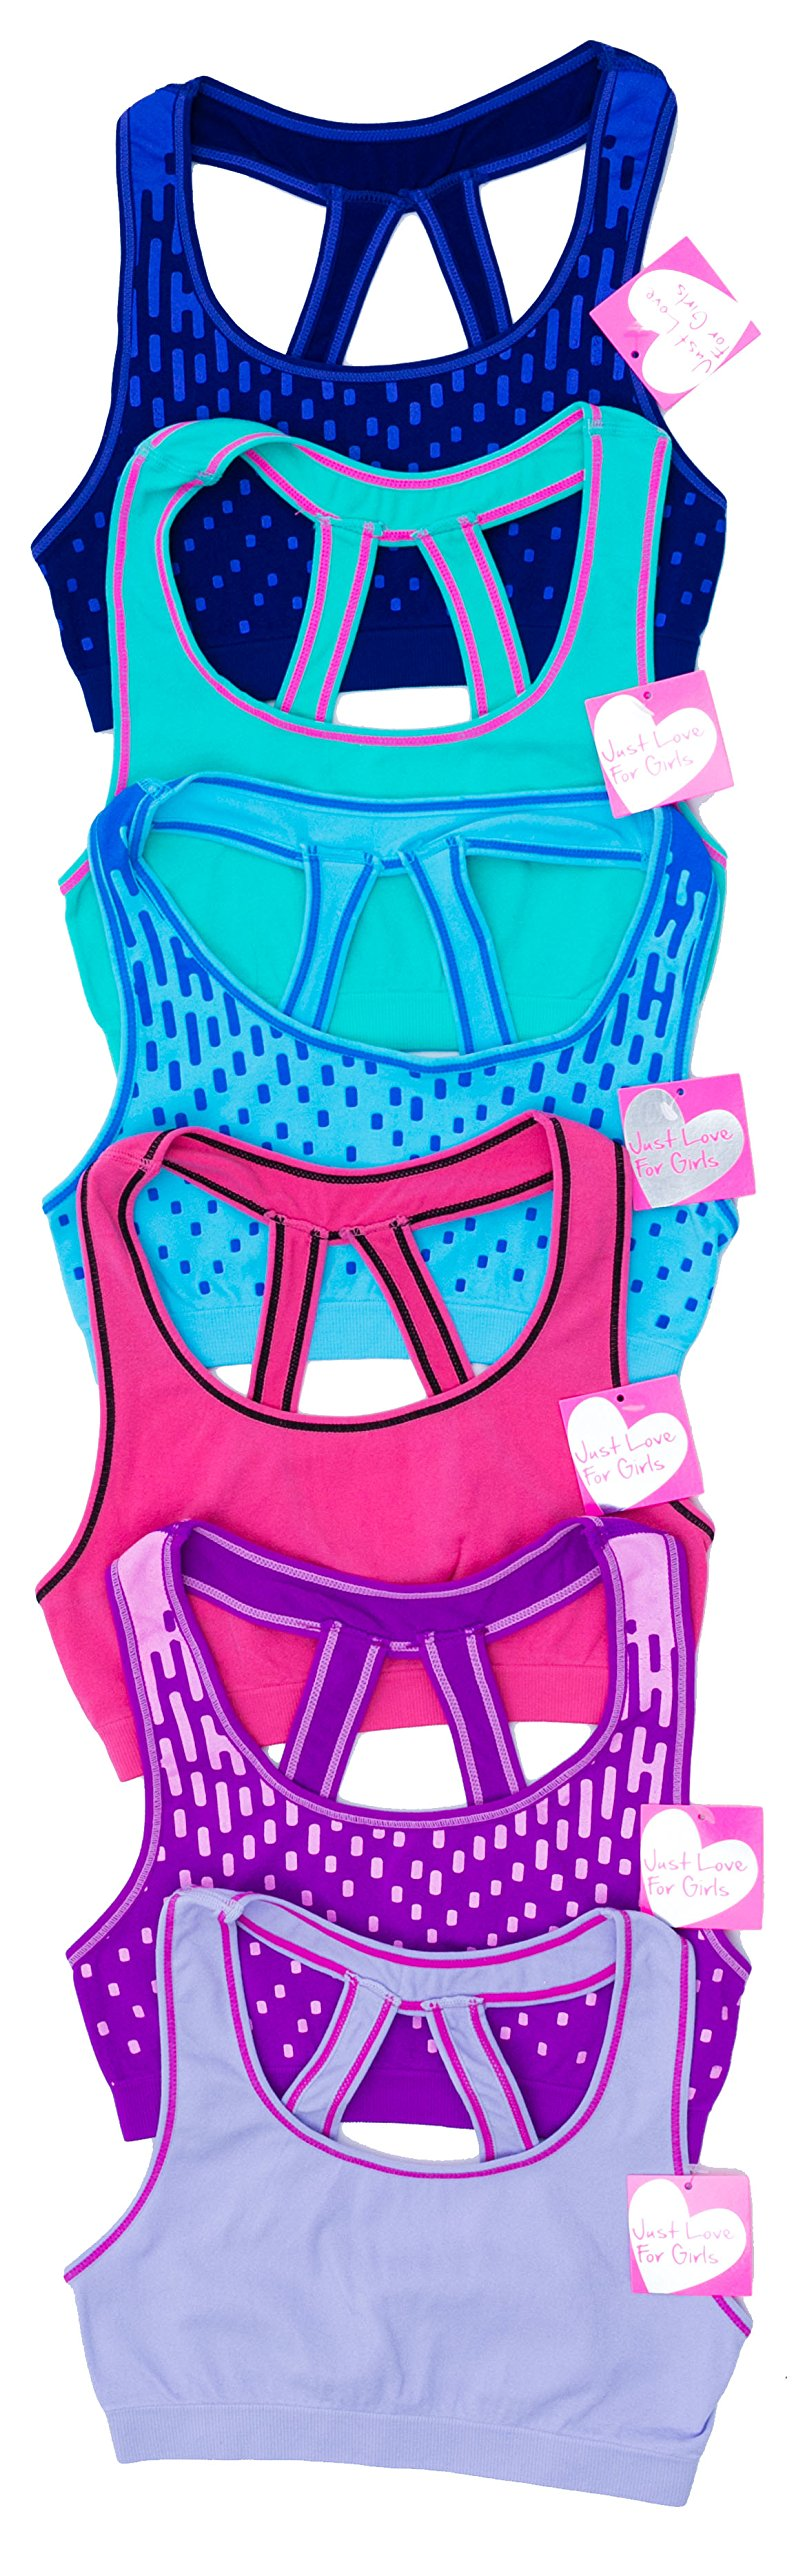 GB-6P-37005-L Just Love Girls Bras (Pack of 6)